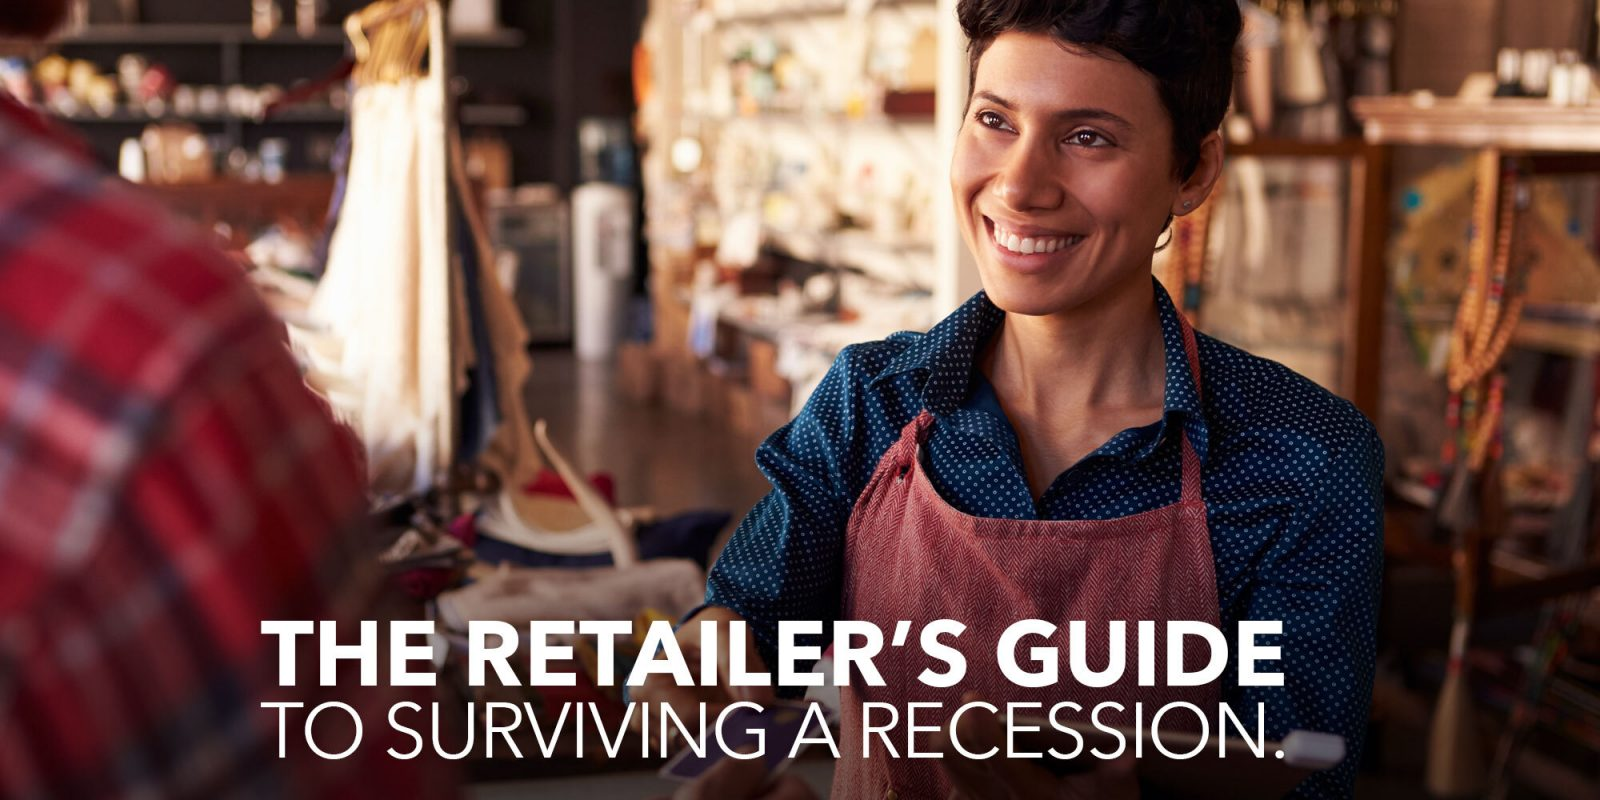 Your company's guide to surviving the recession